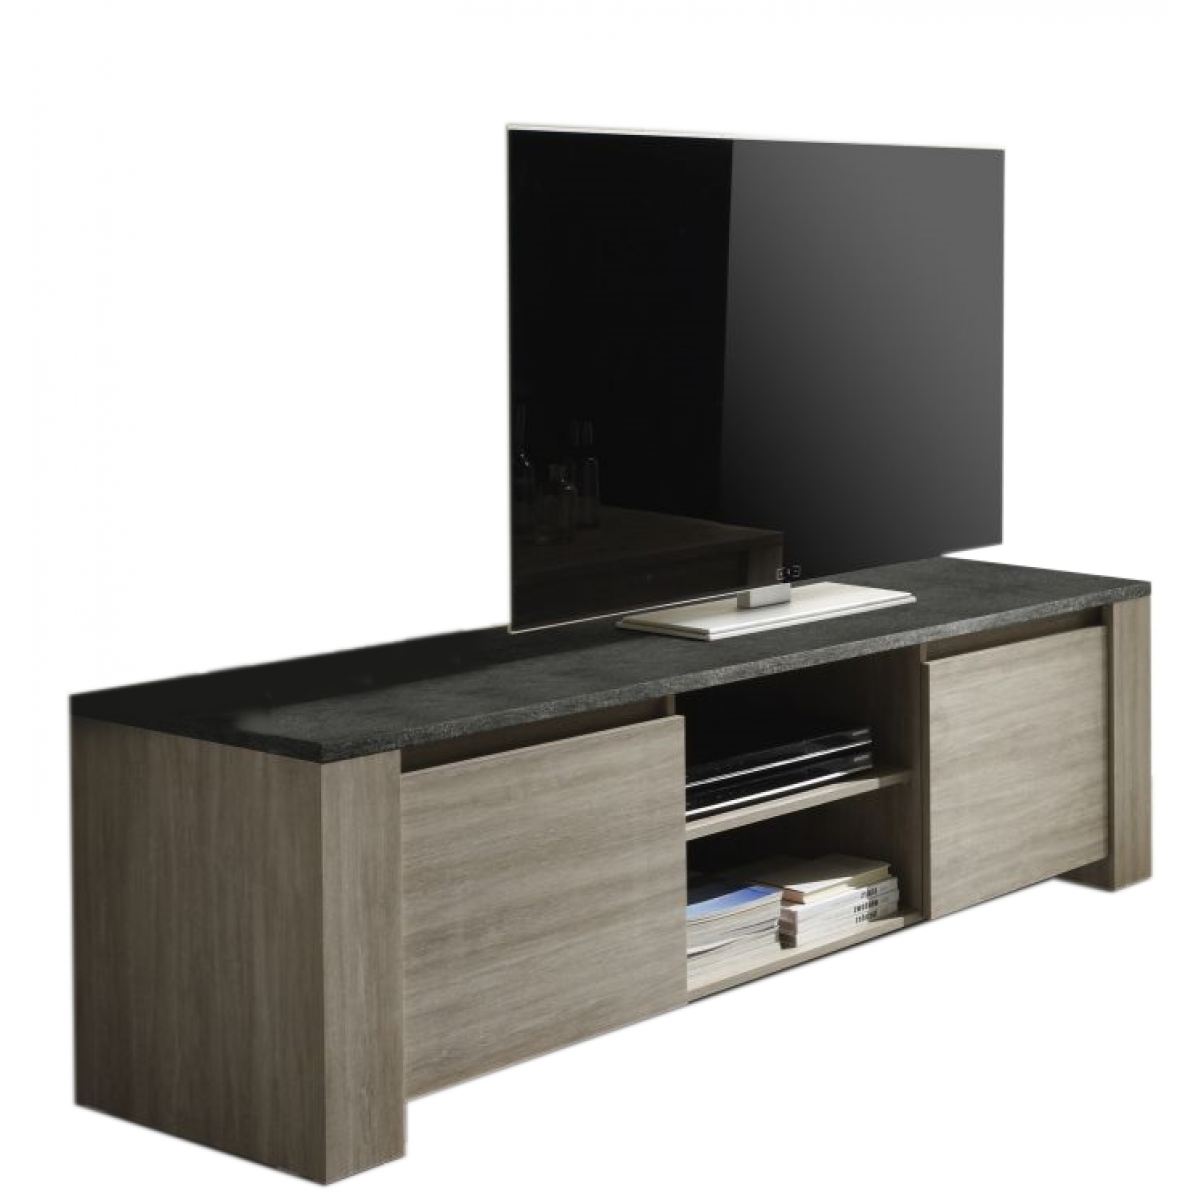 meuble tv finition ch ne gris et ardoise 2 portes elba mooviin. Black Bedroom Furniture Sets. Home Design Ideas